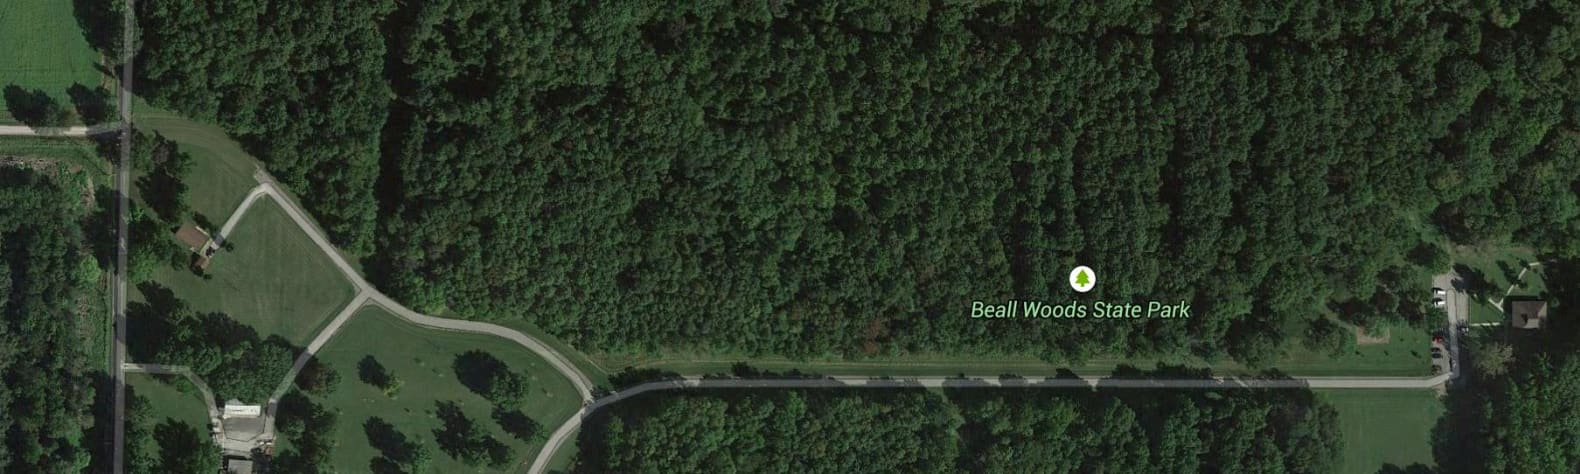 Beall Woods State Park